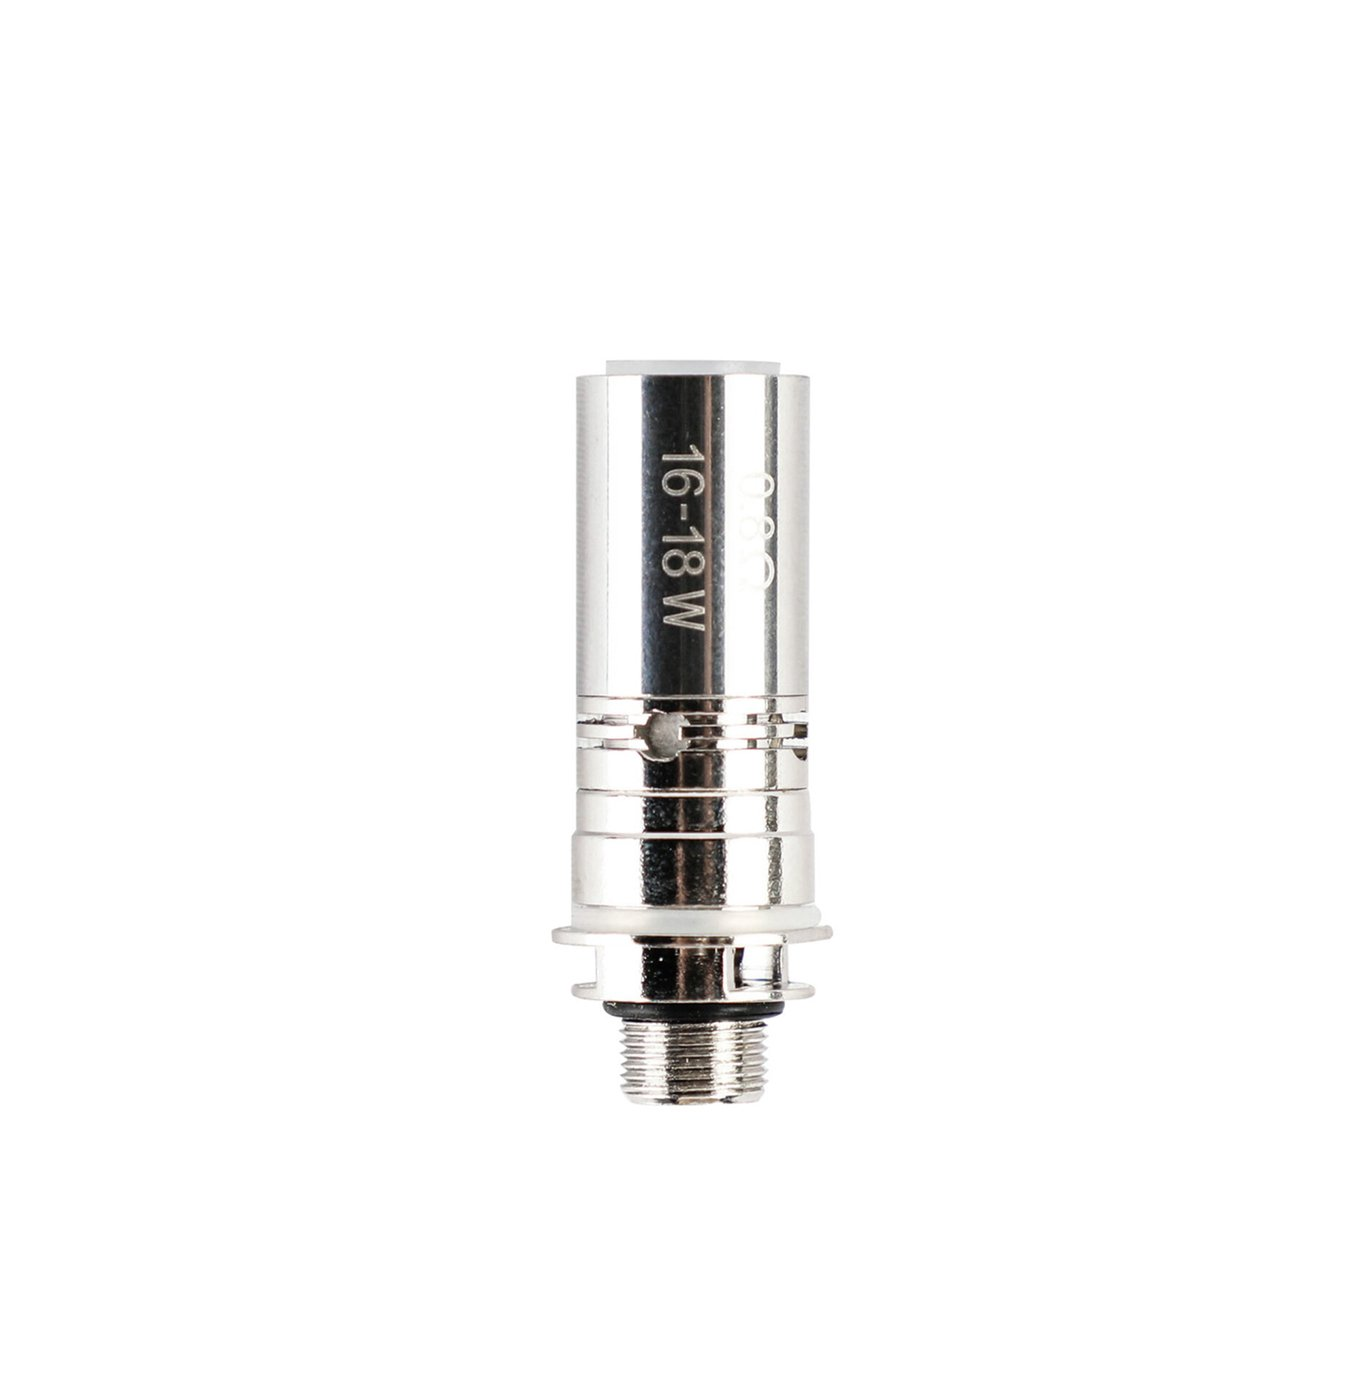 Innokin T20S Coil 0.8OHM - Pack of 5